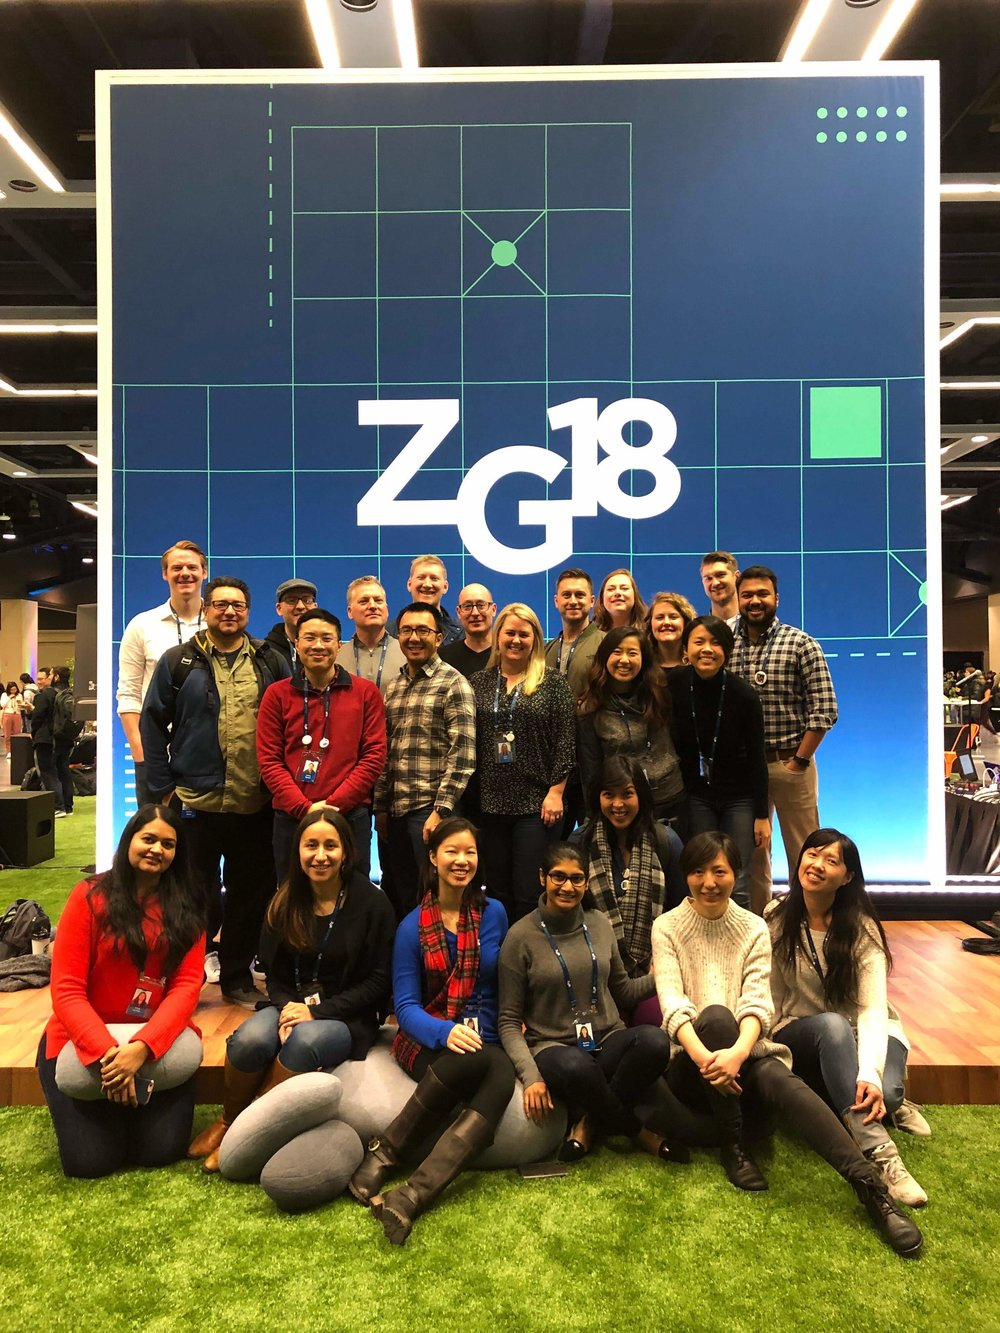 With teammates at the annual Zillow Group conference in Seattle